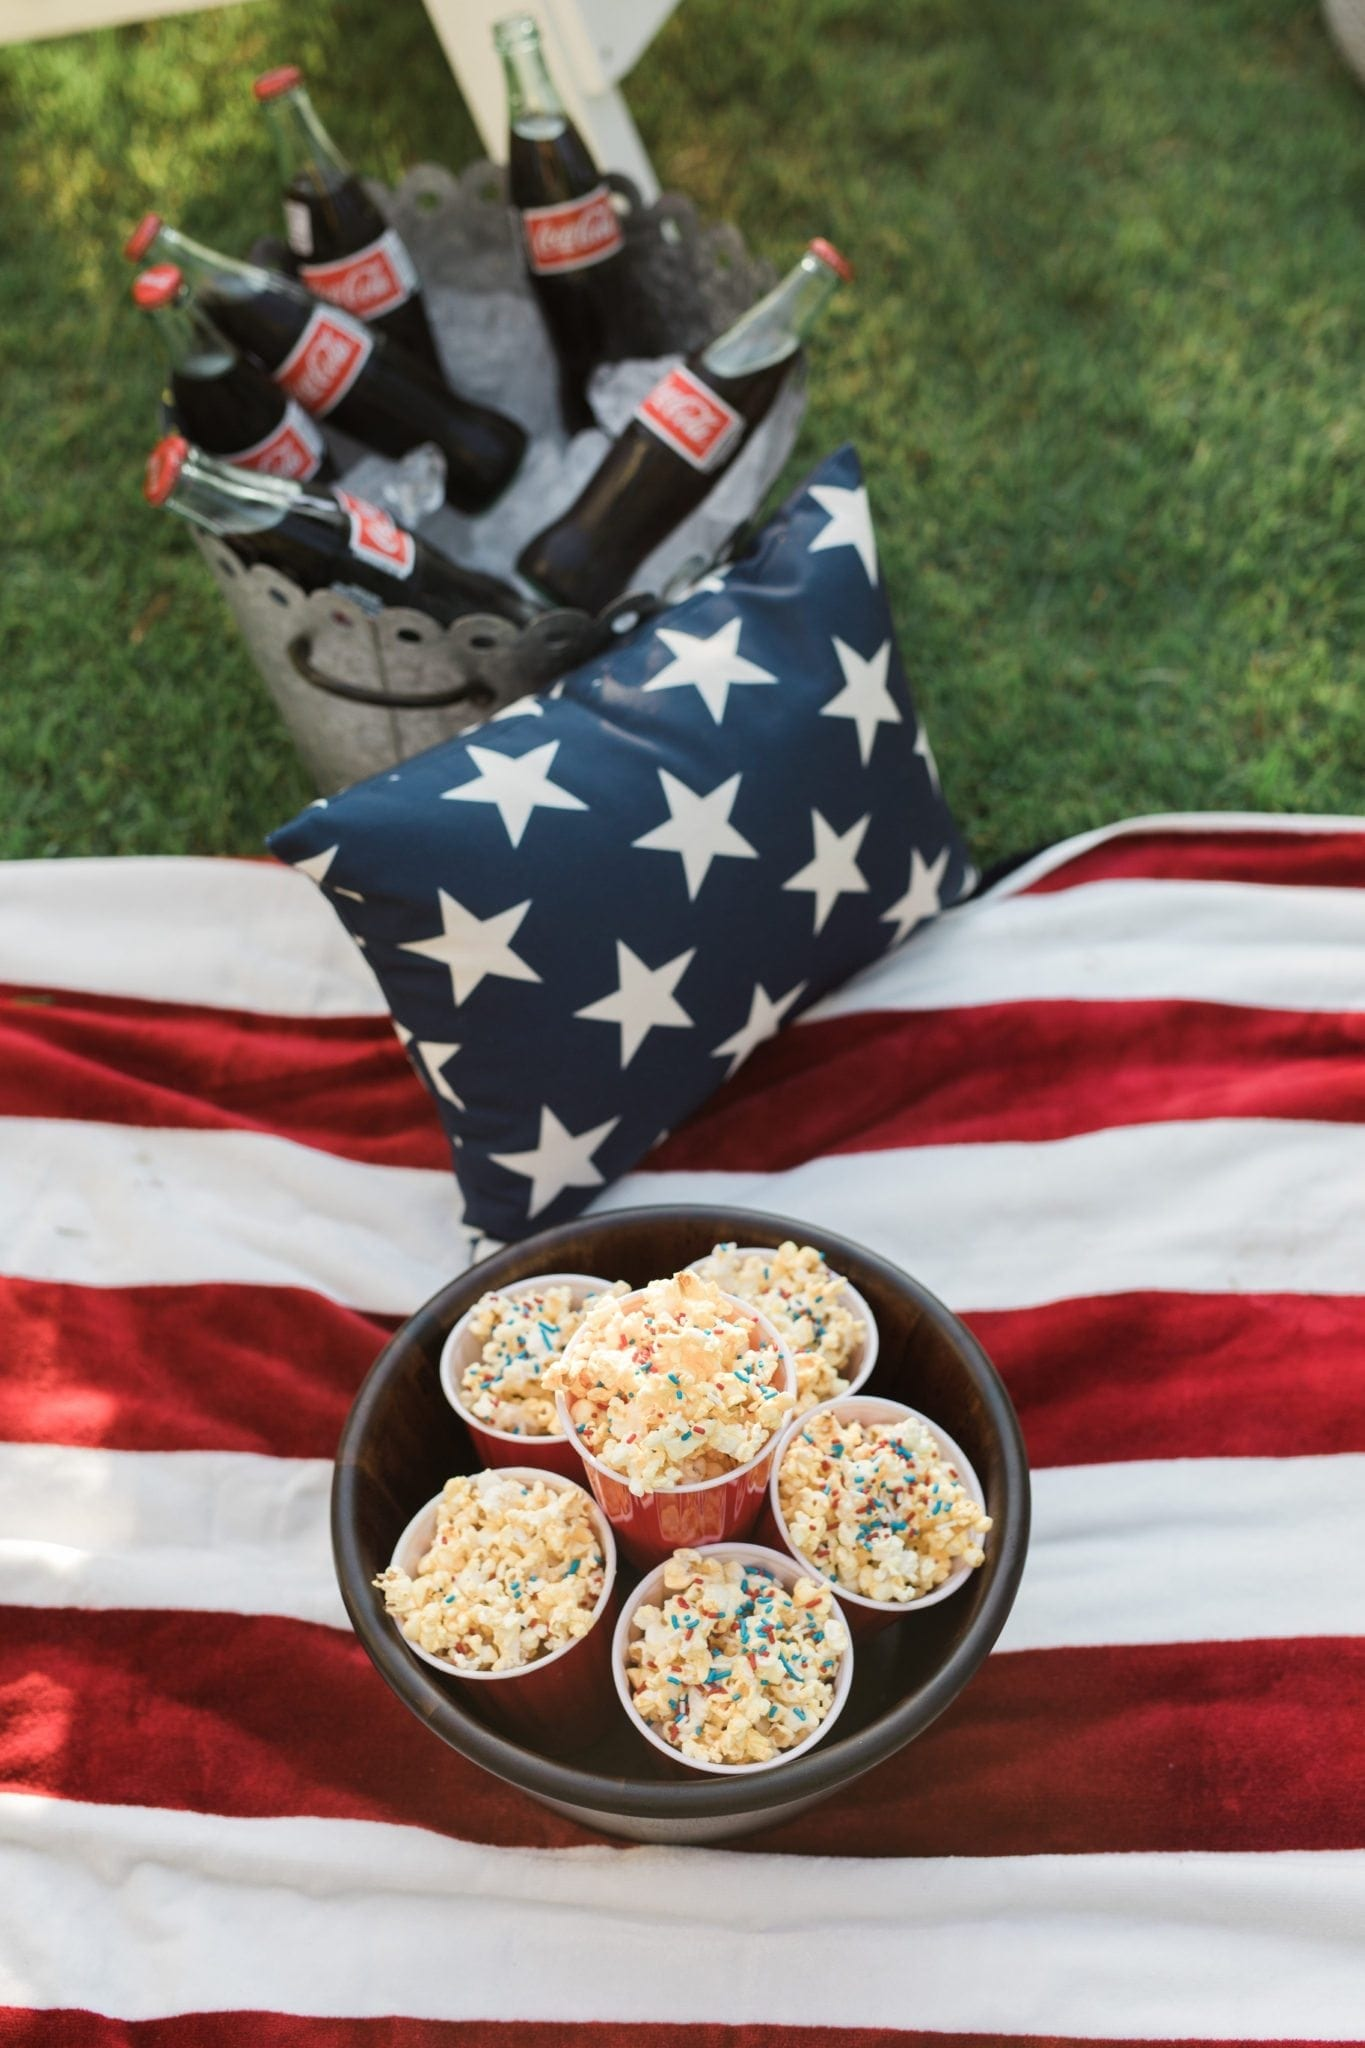 Popcorn with white chocolate and red white and blue sprinkles. 4th of july food ideas for kids